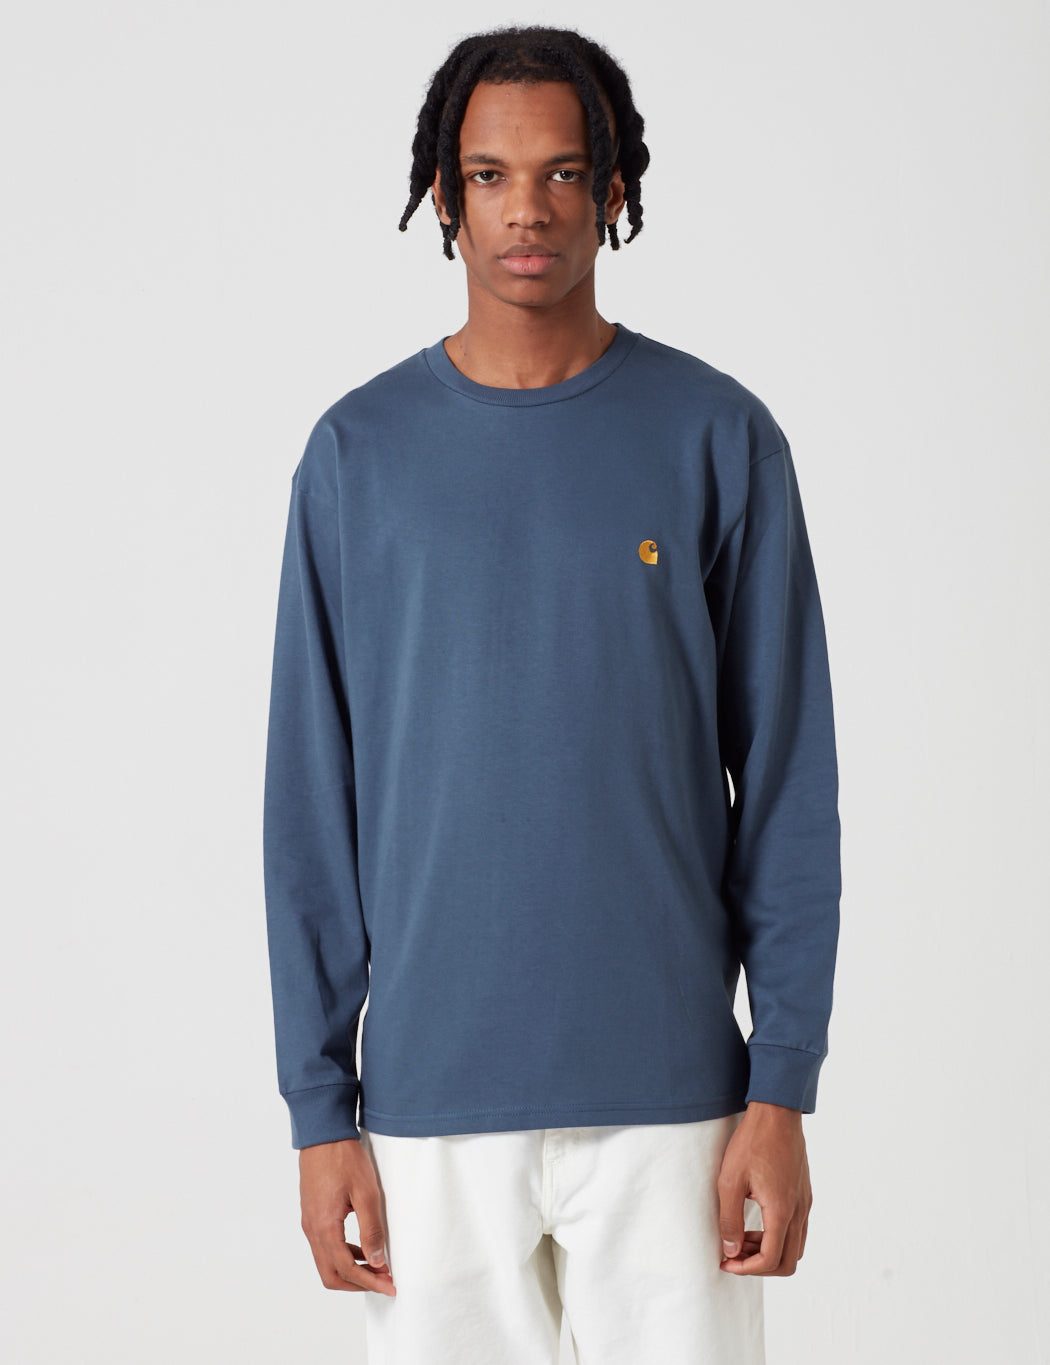 Carhartt Chase Long Sleeve T-Shirt - Stone Blue